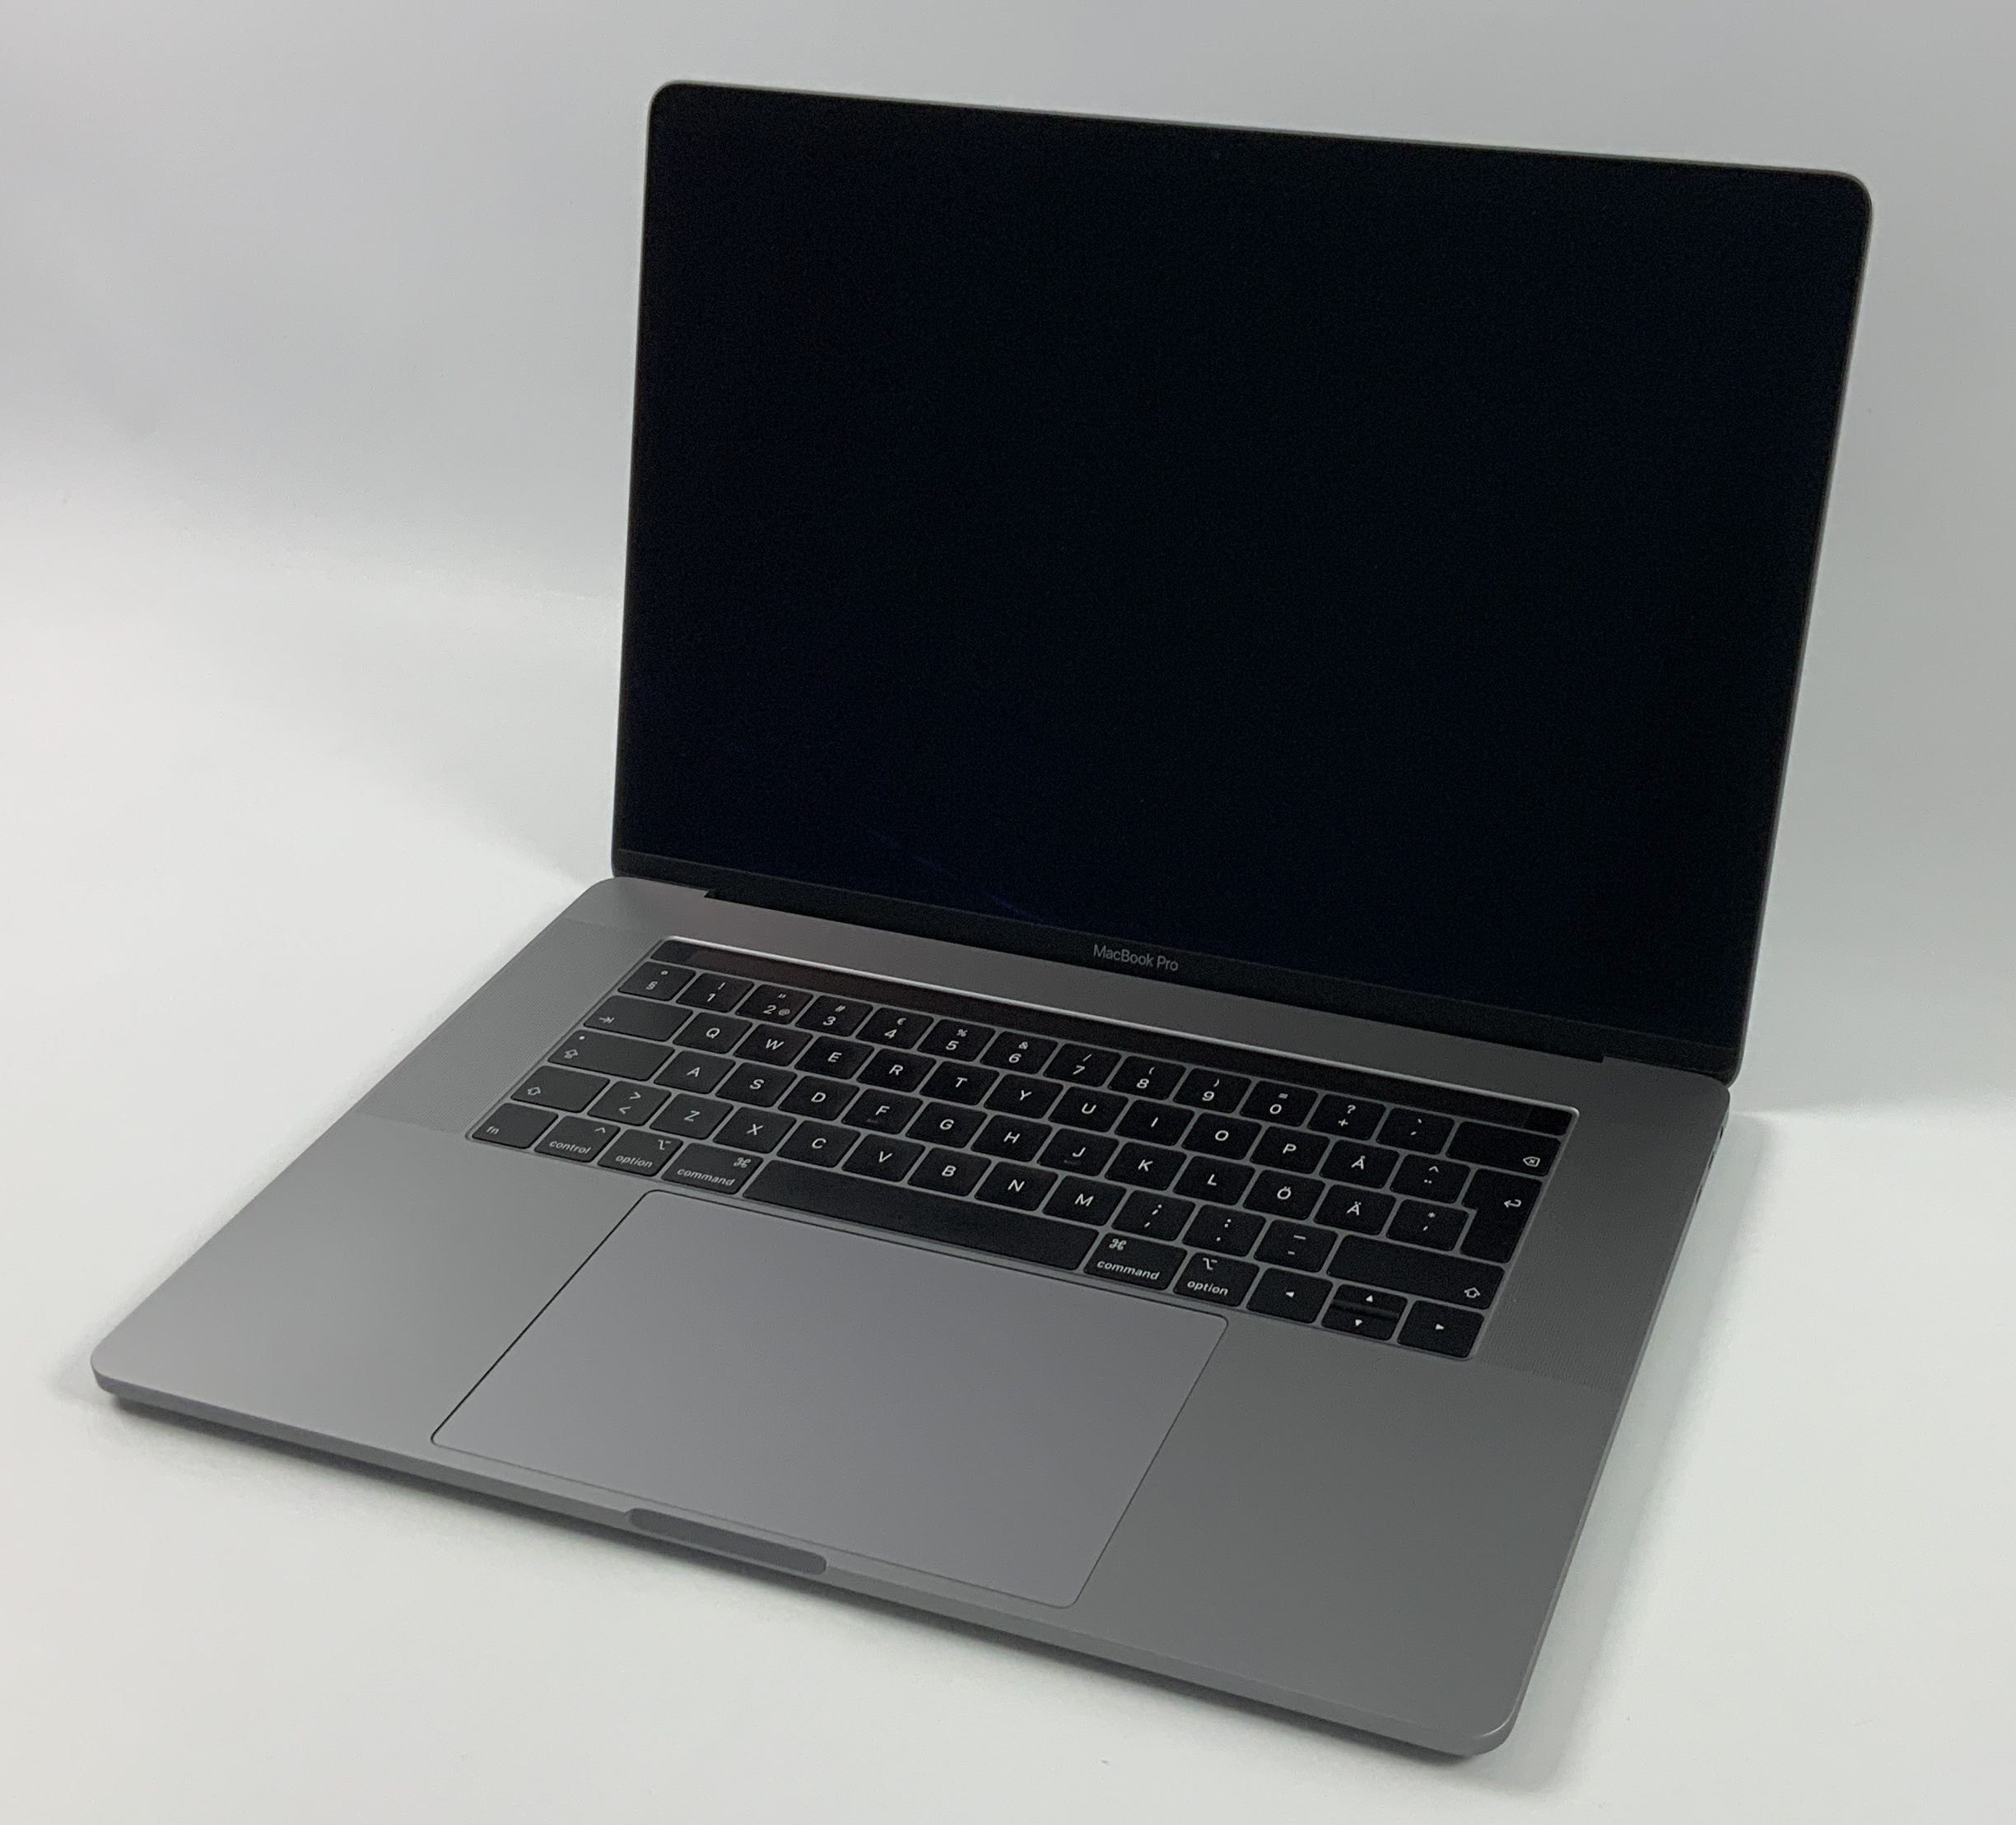 "MacBook Pro 15"" Touch Bar Mid 2019 (Intel 8-Core i9 2.3 GHz 32 GB RAM 512 GB SSD), Space Gray, Intel 8-Core i9 2.3 GHz, 32 GB RAM, 512 GB SSD, bild 1"